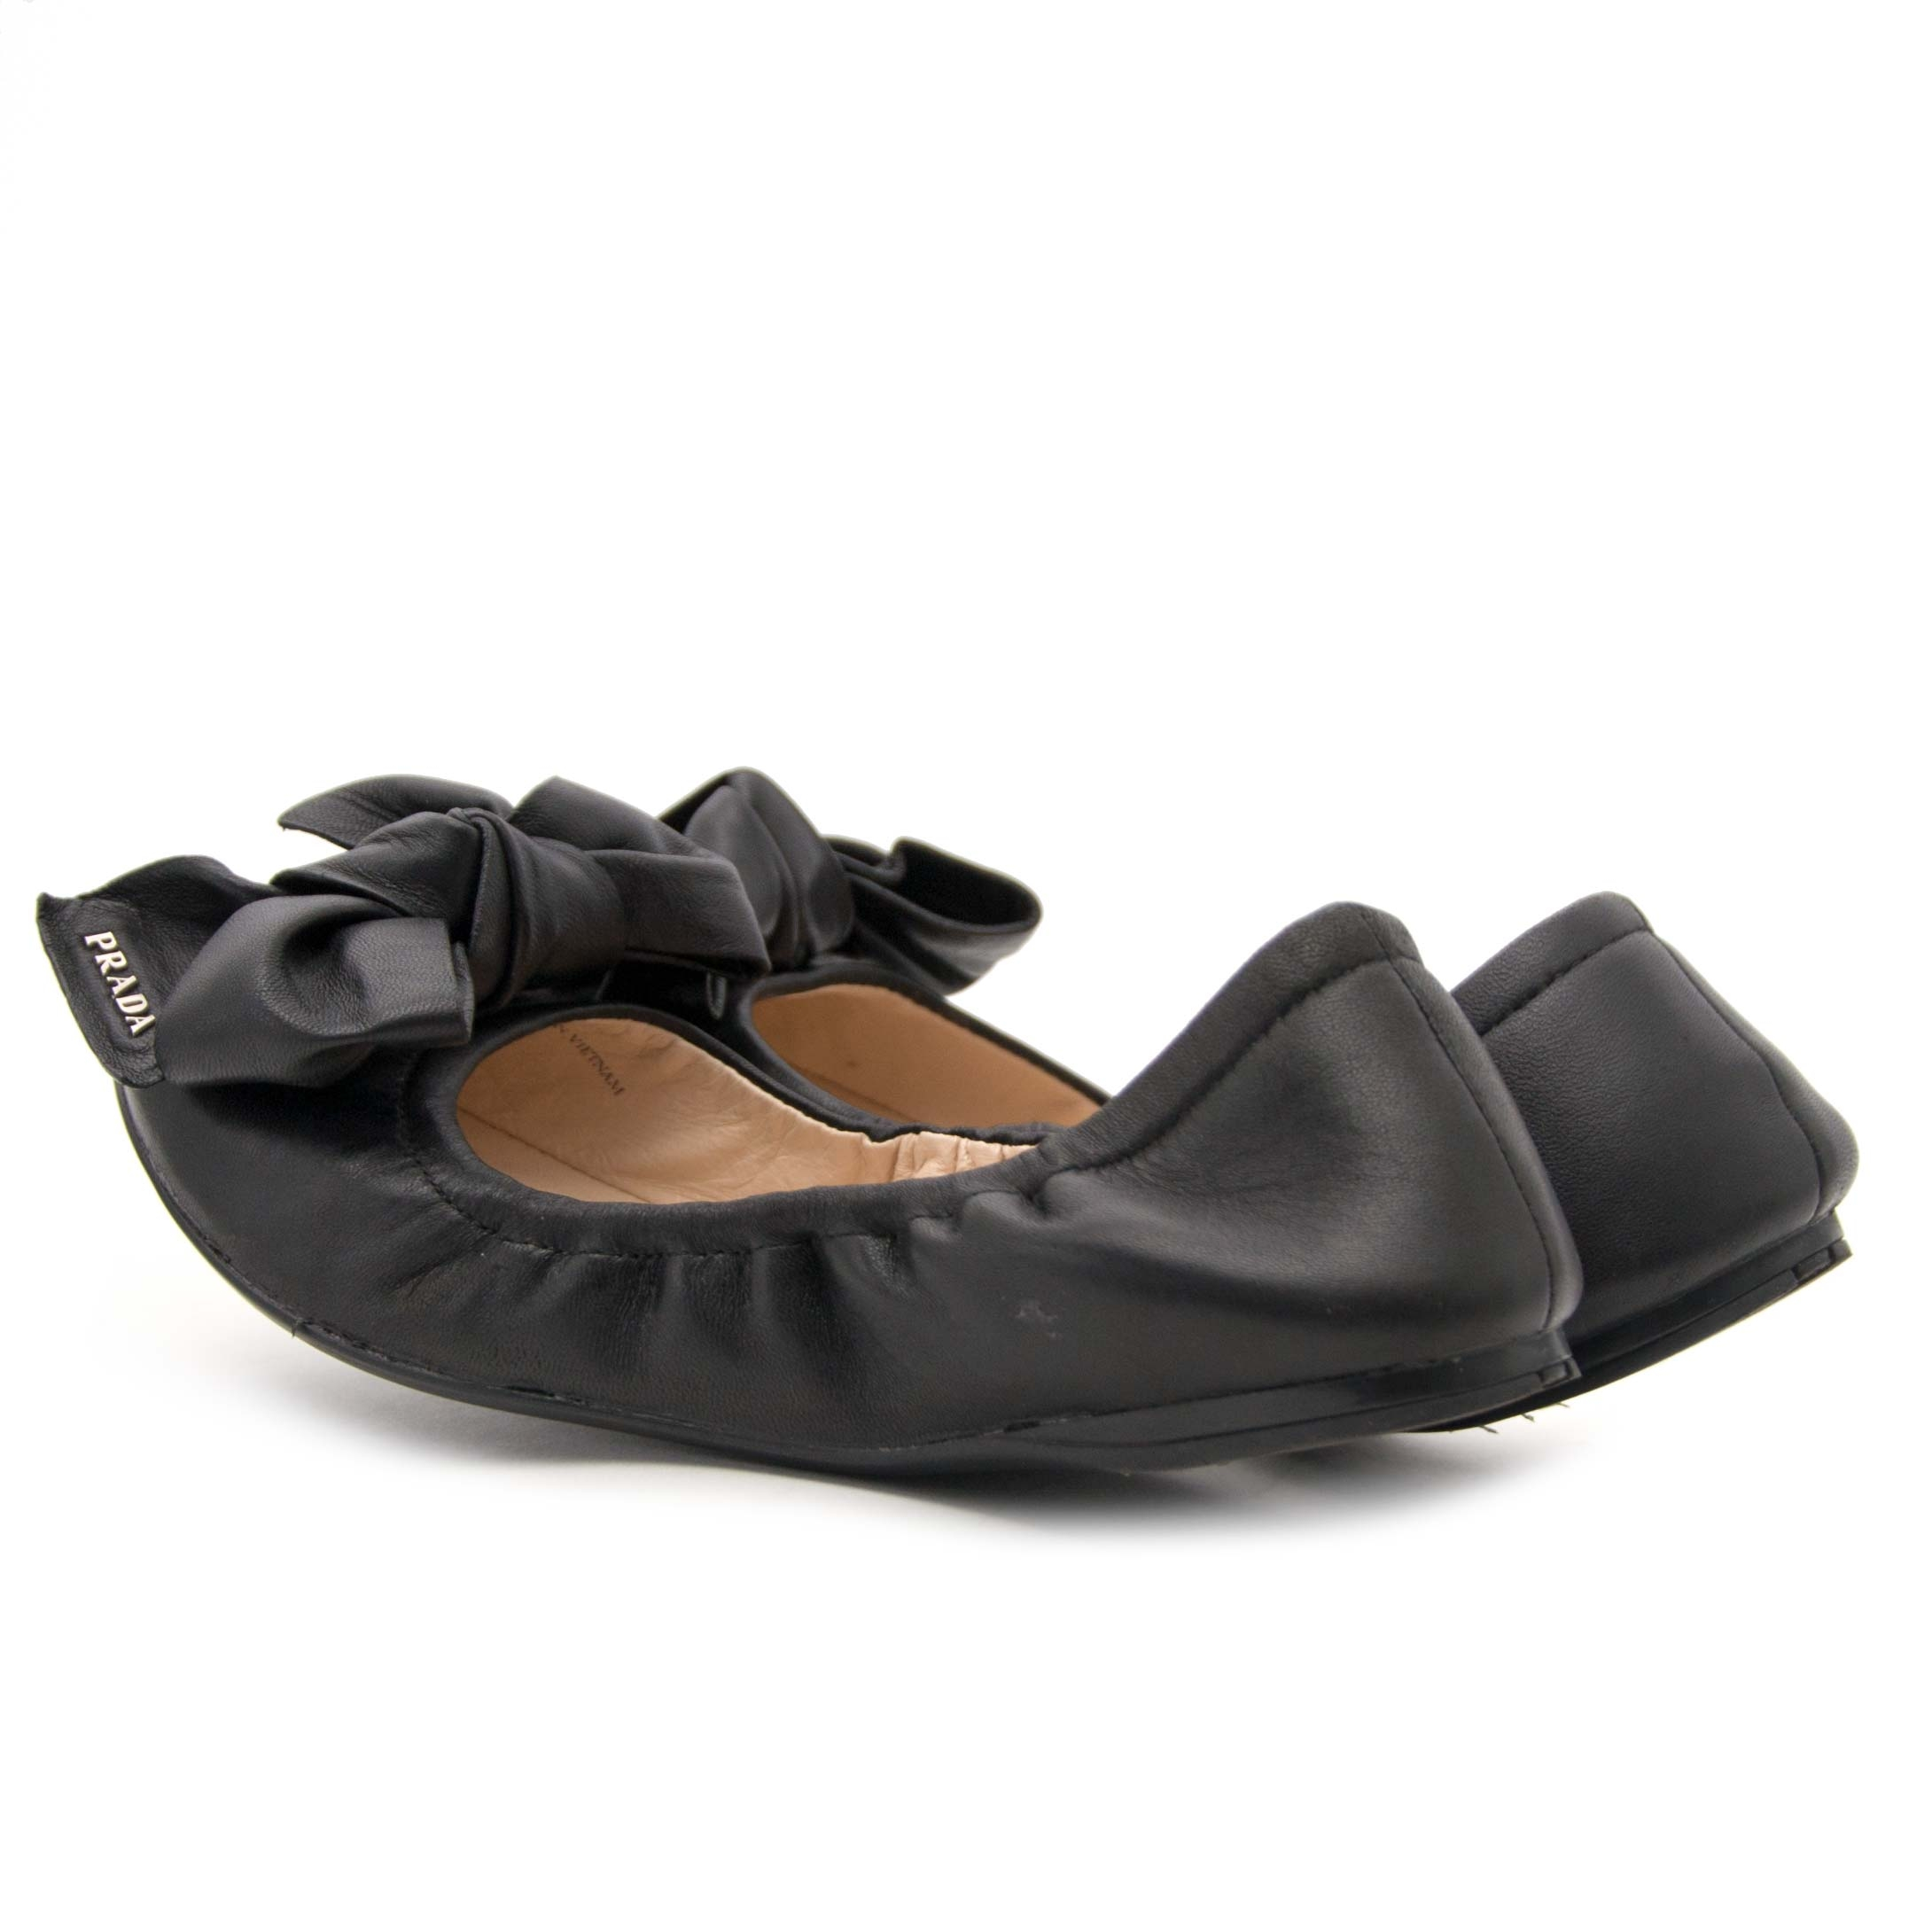 Buy authentic Prada ballerina flats at the best price at Labellov. Safe and secure shopping. Koop tweedehands authentieke Prada ballerina's bij Labellov in Antwerpen.